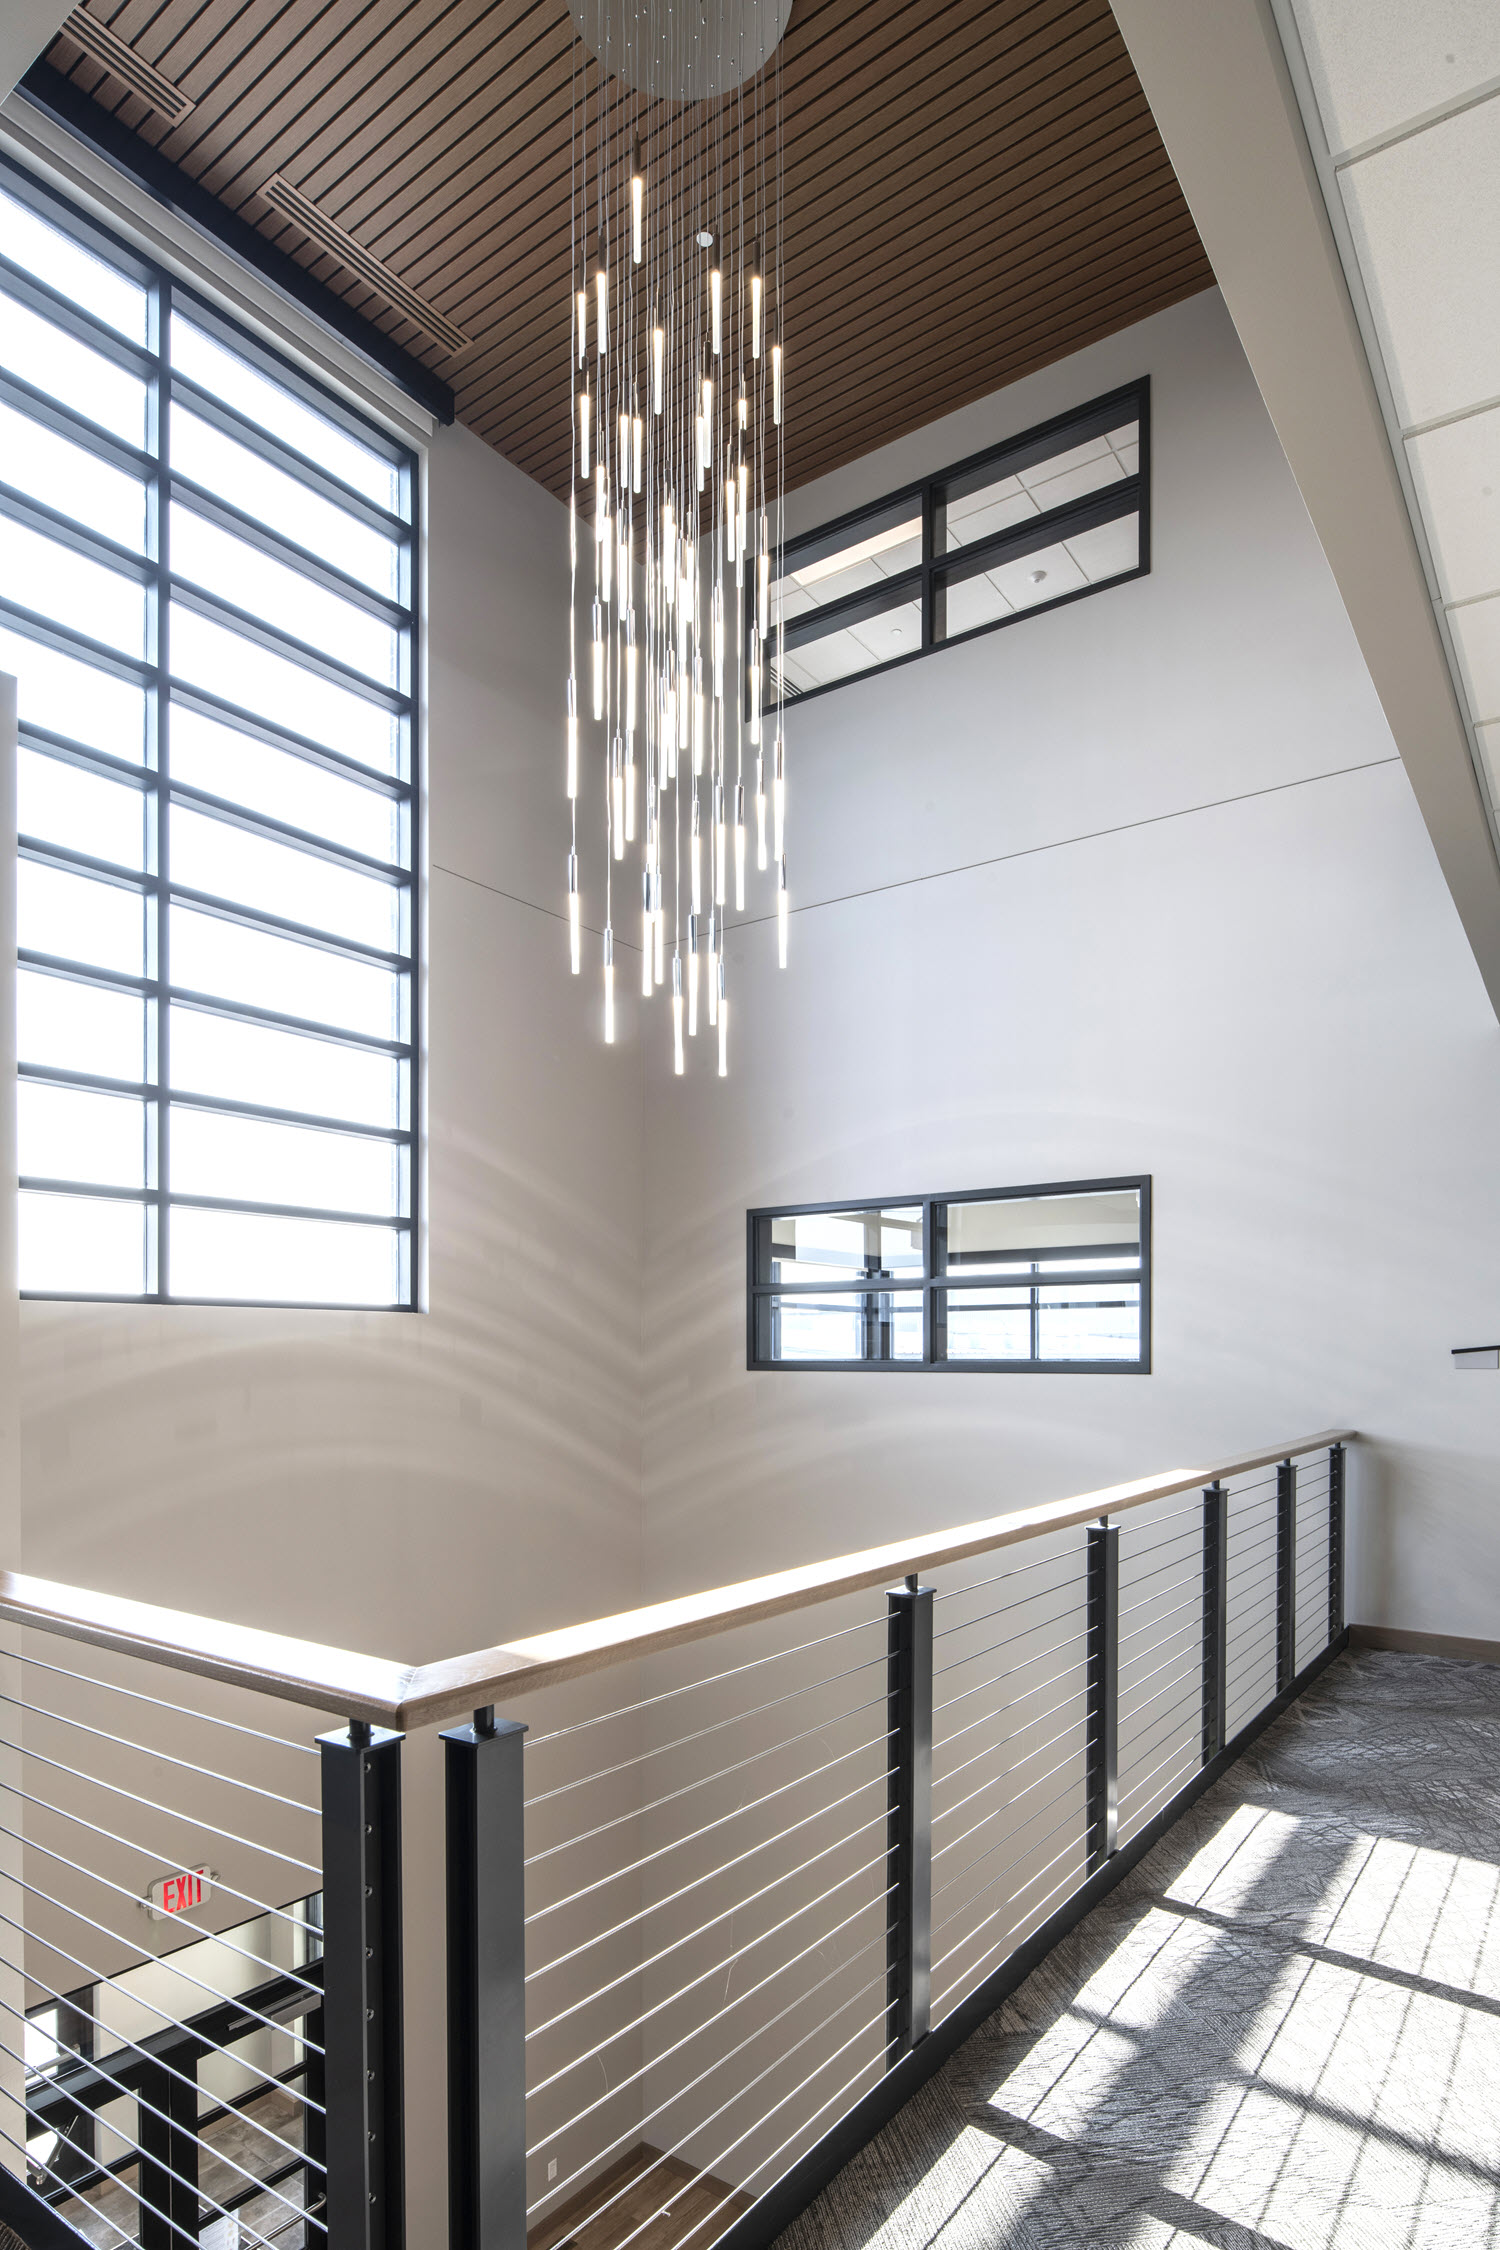 Stairs and Balconies with modern cable railing system